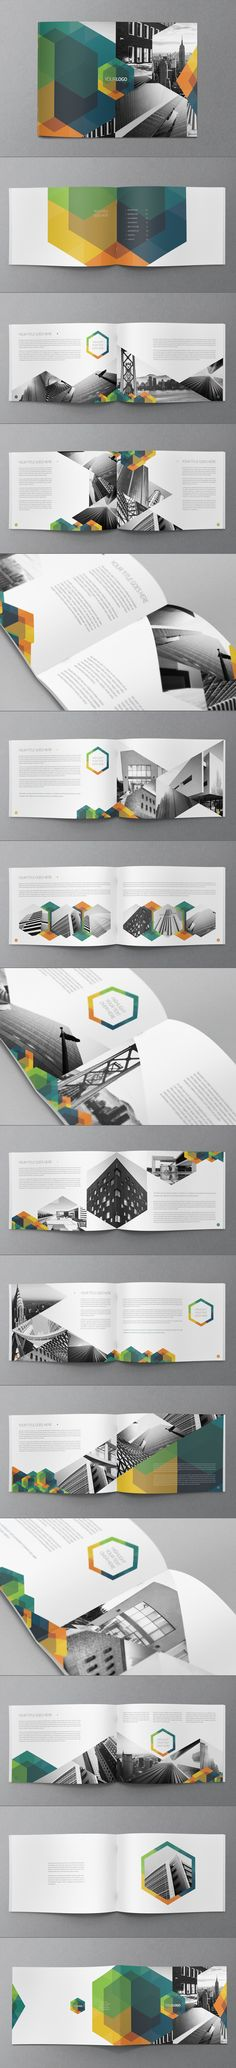 Hexo Brochure Design by Abra Design, via Behance.